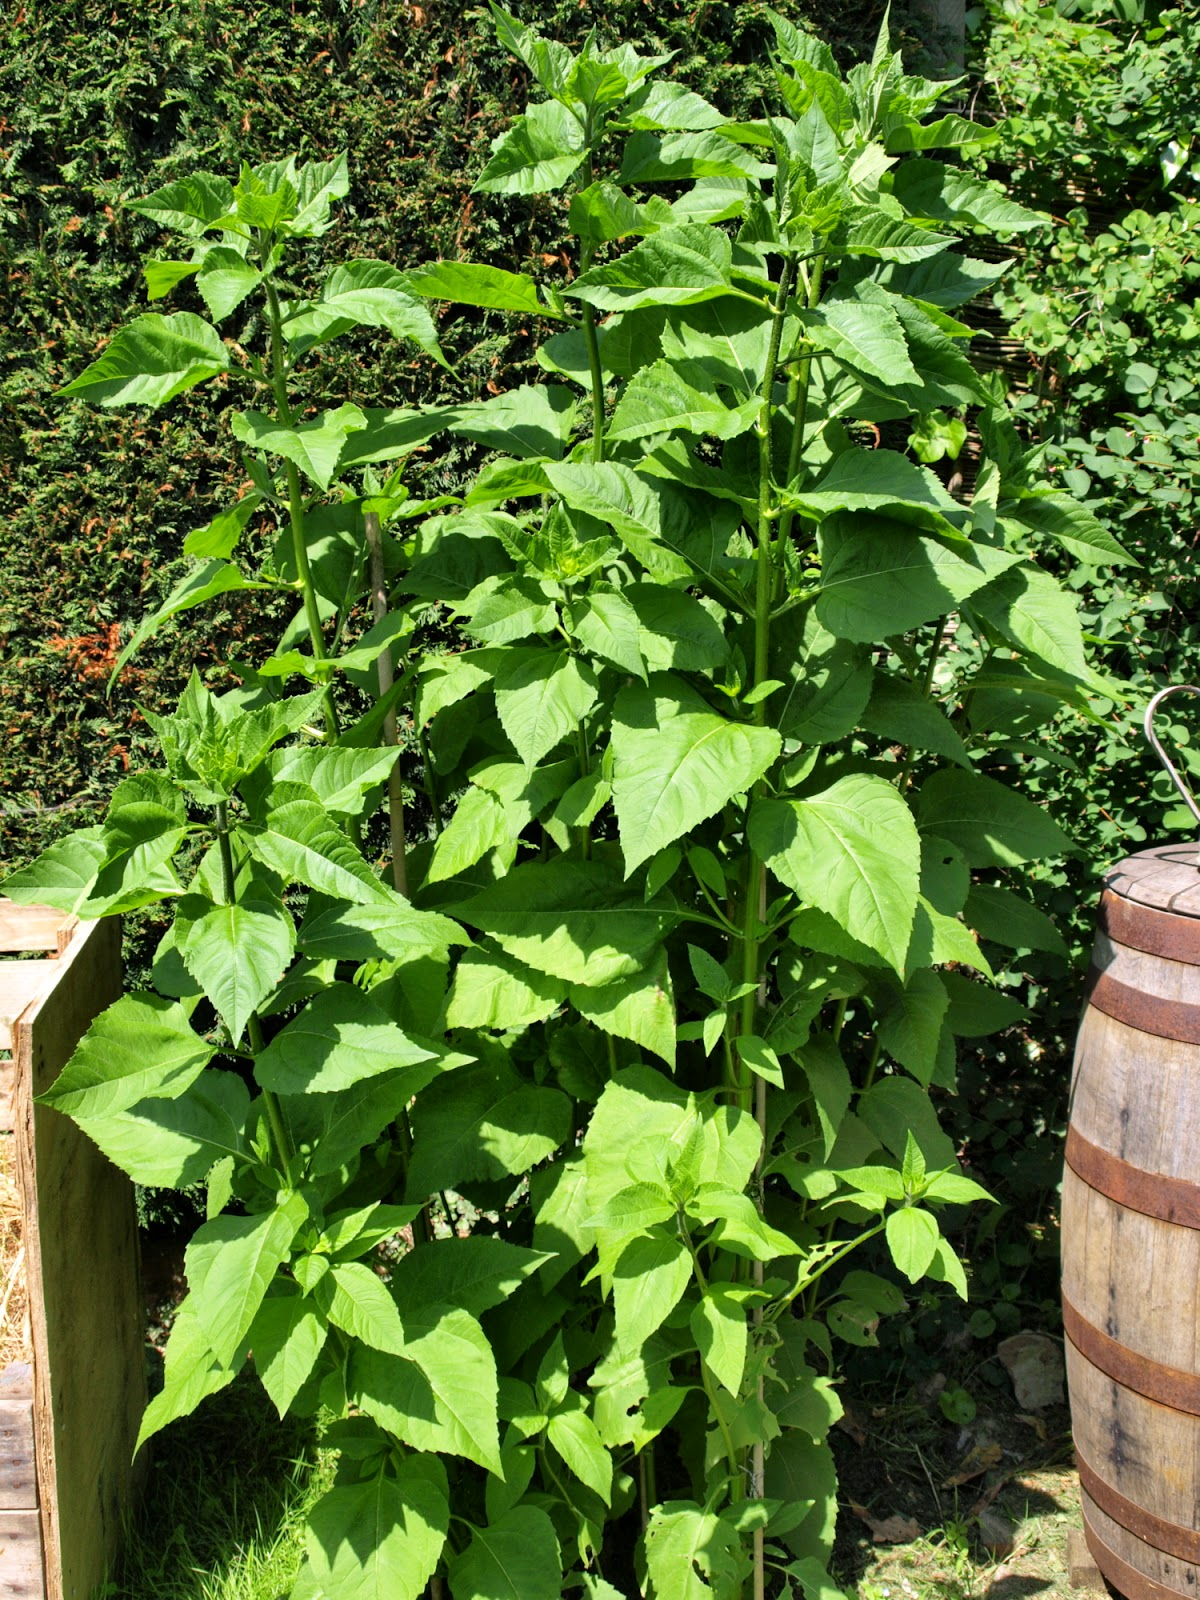 An image of Jerusalem artichoke (Helianthus tuberosus) plants